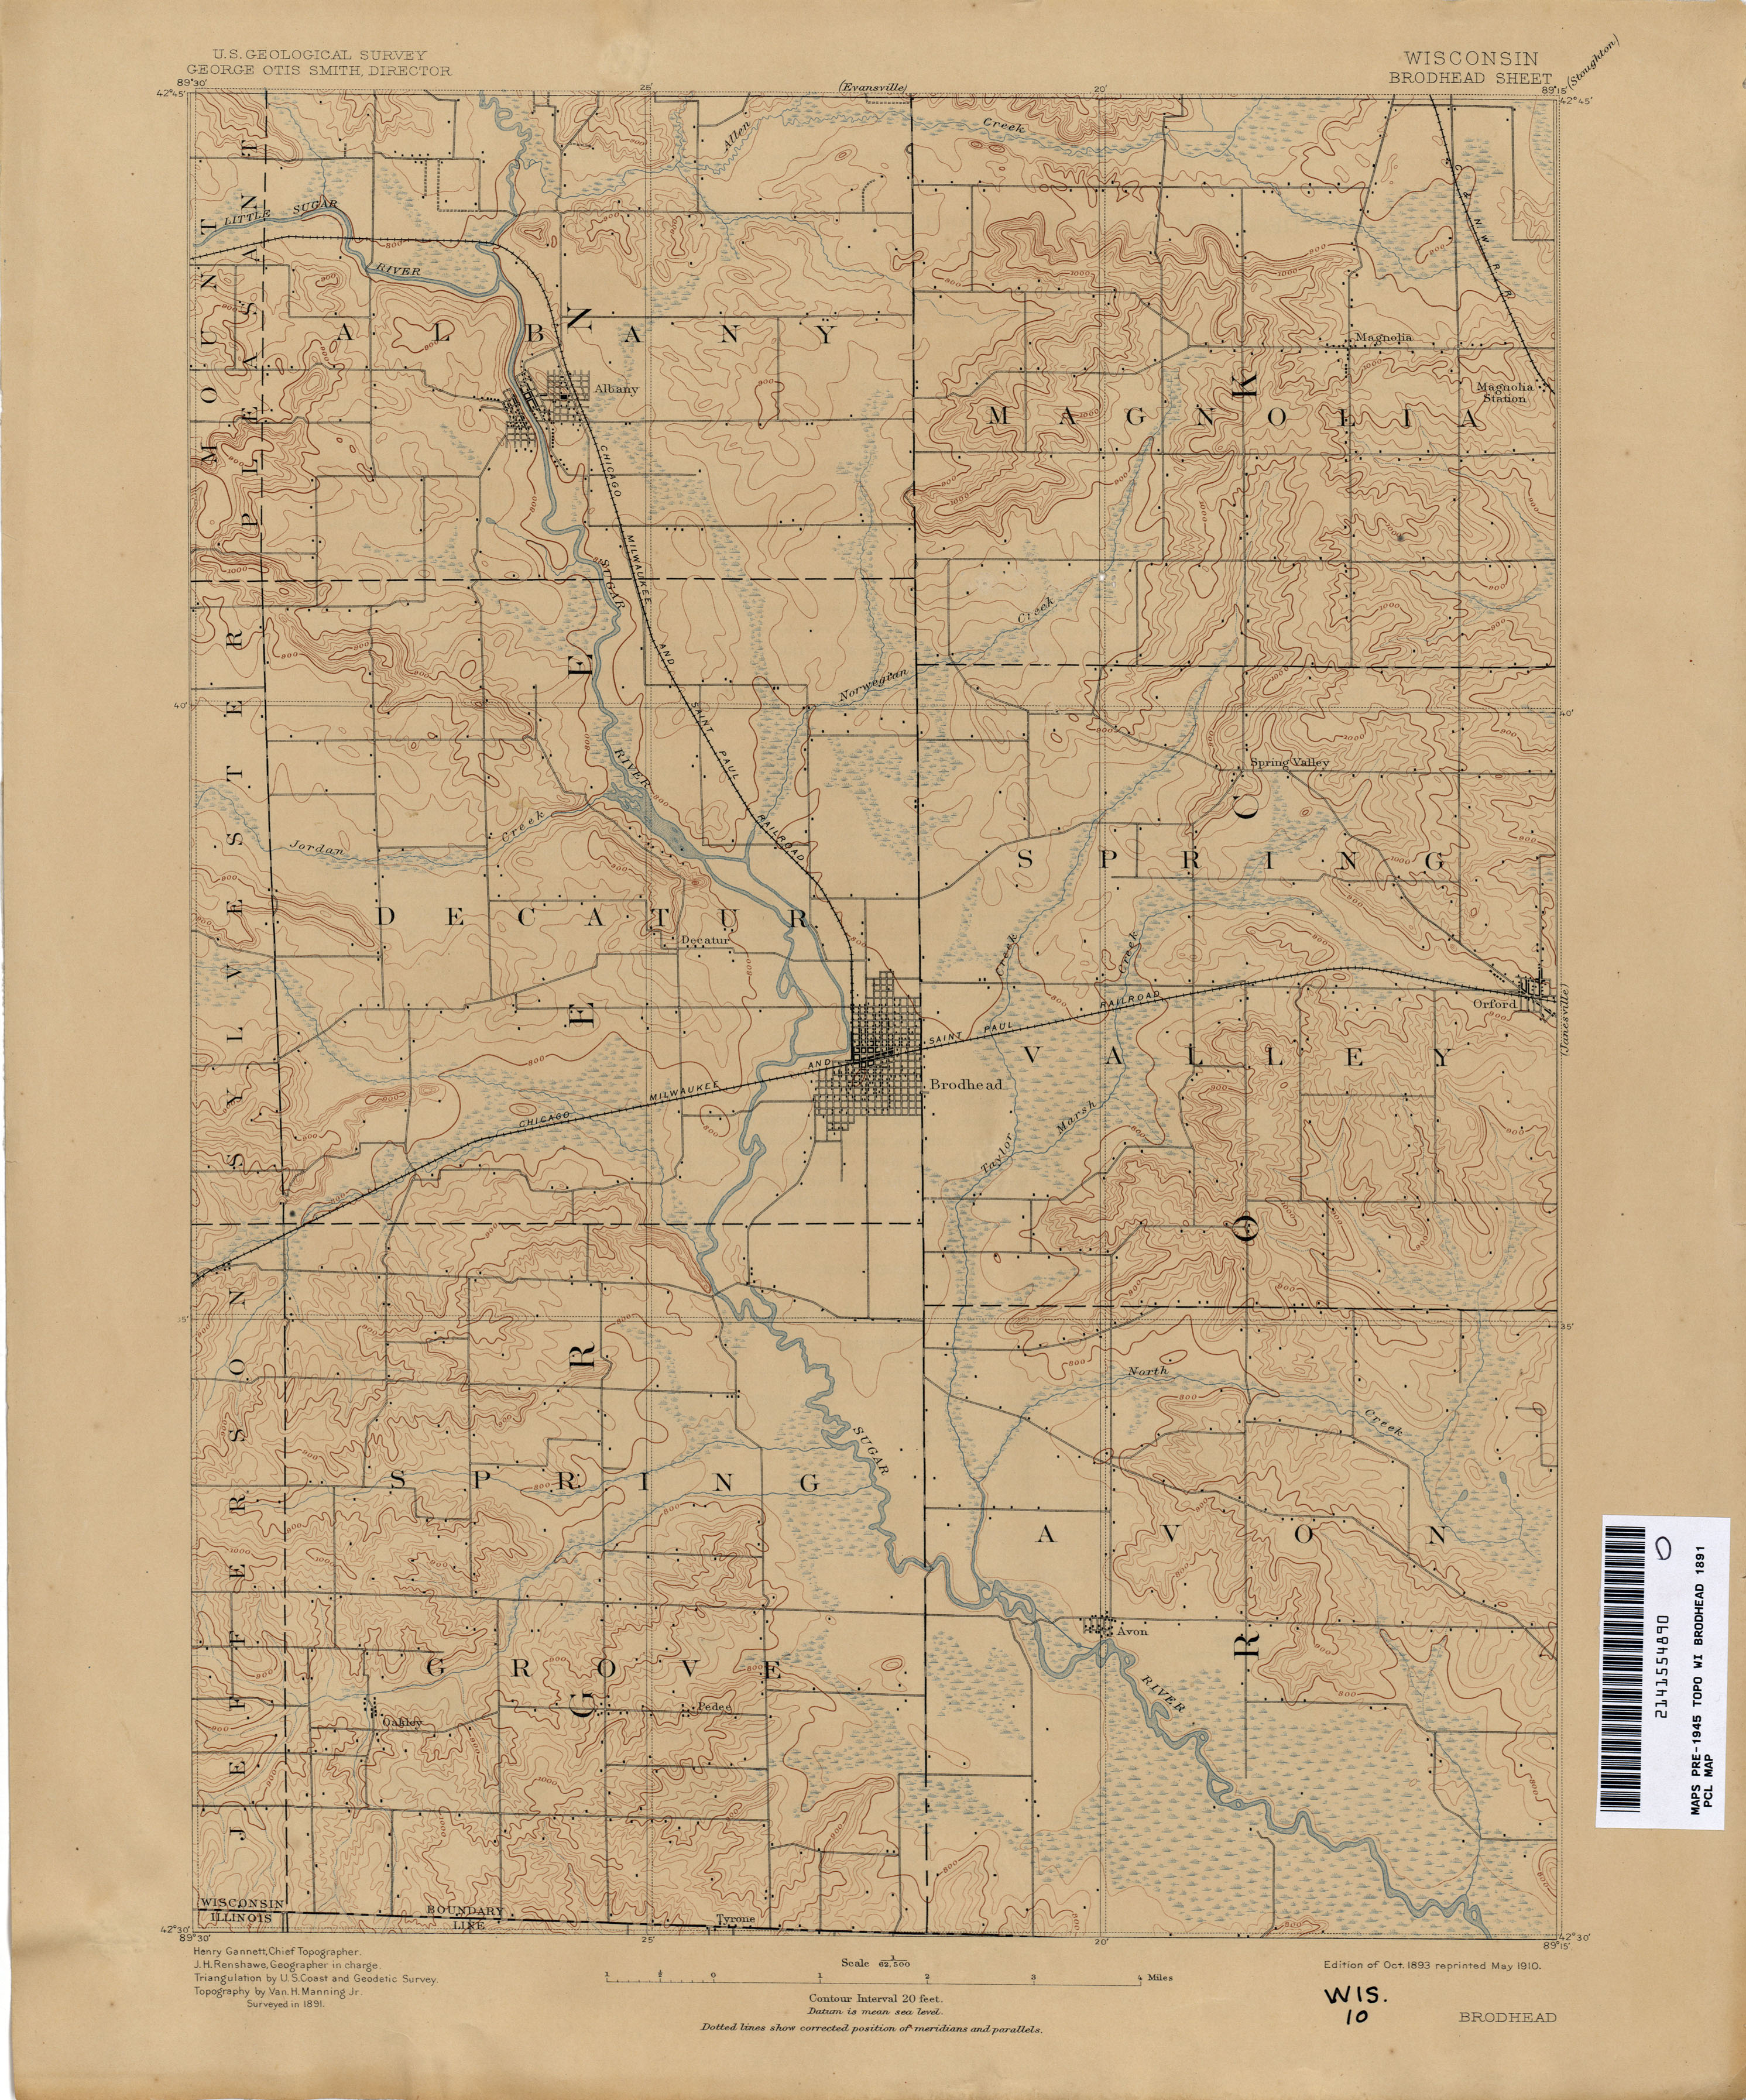 Evansville Illinois Map.Historical Topographic Maps Perry Castaneda Map Collection Ut